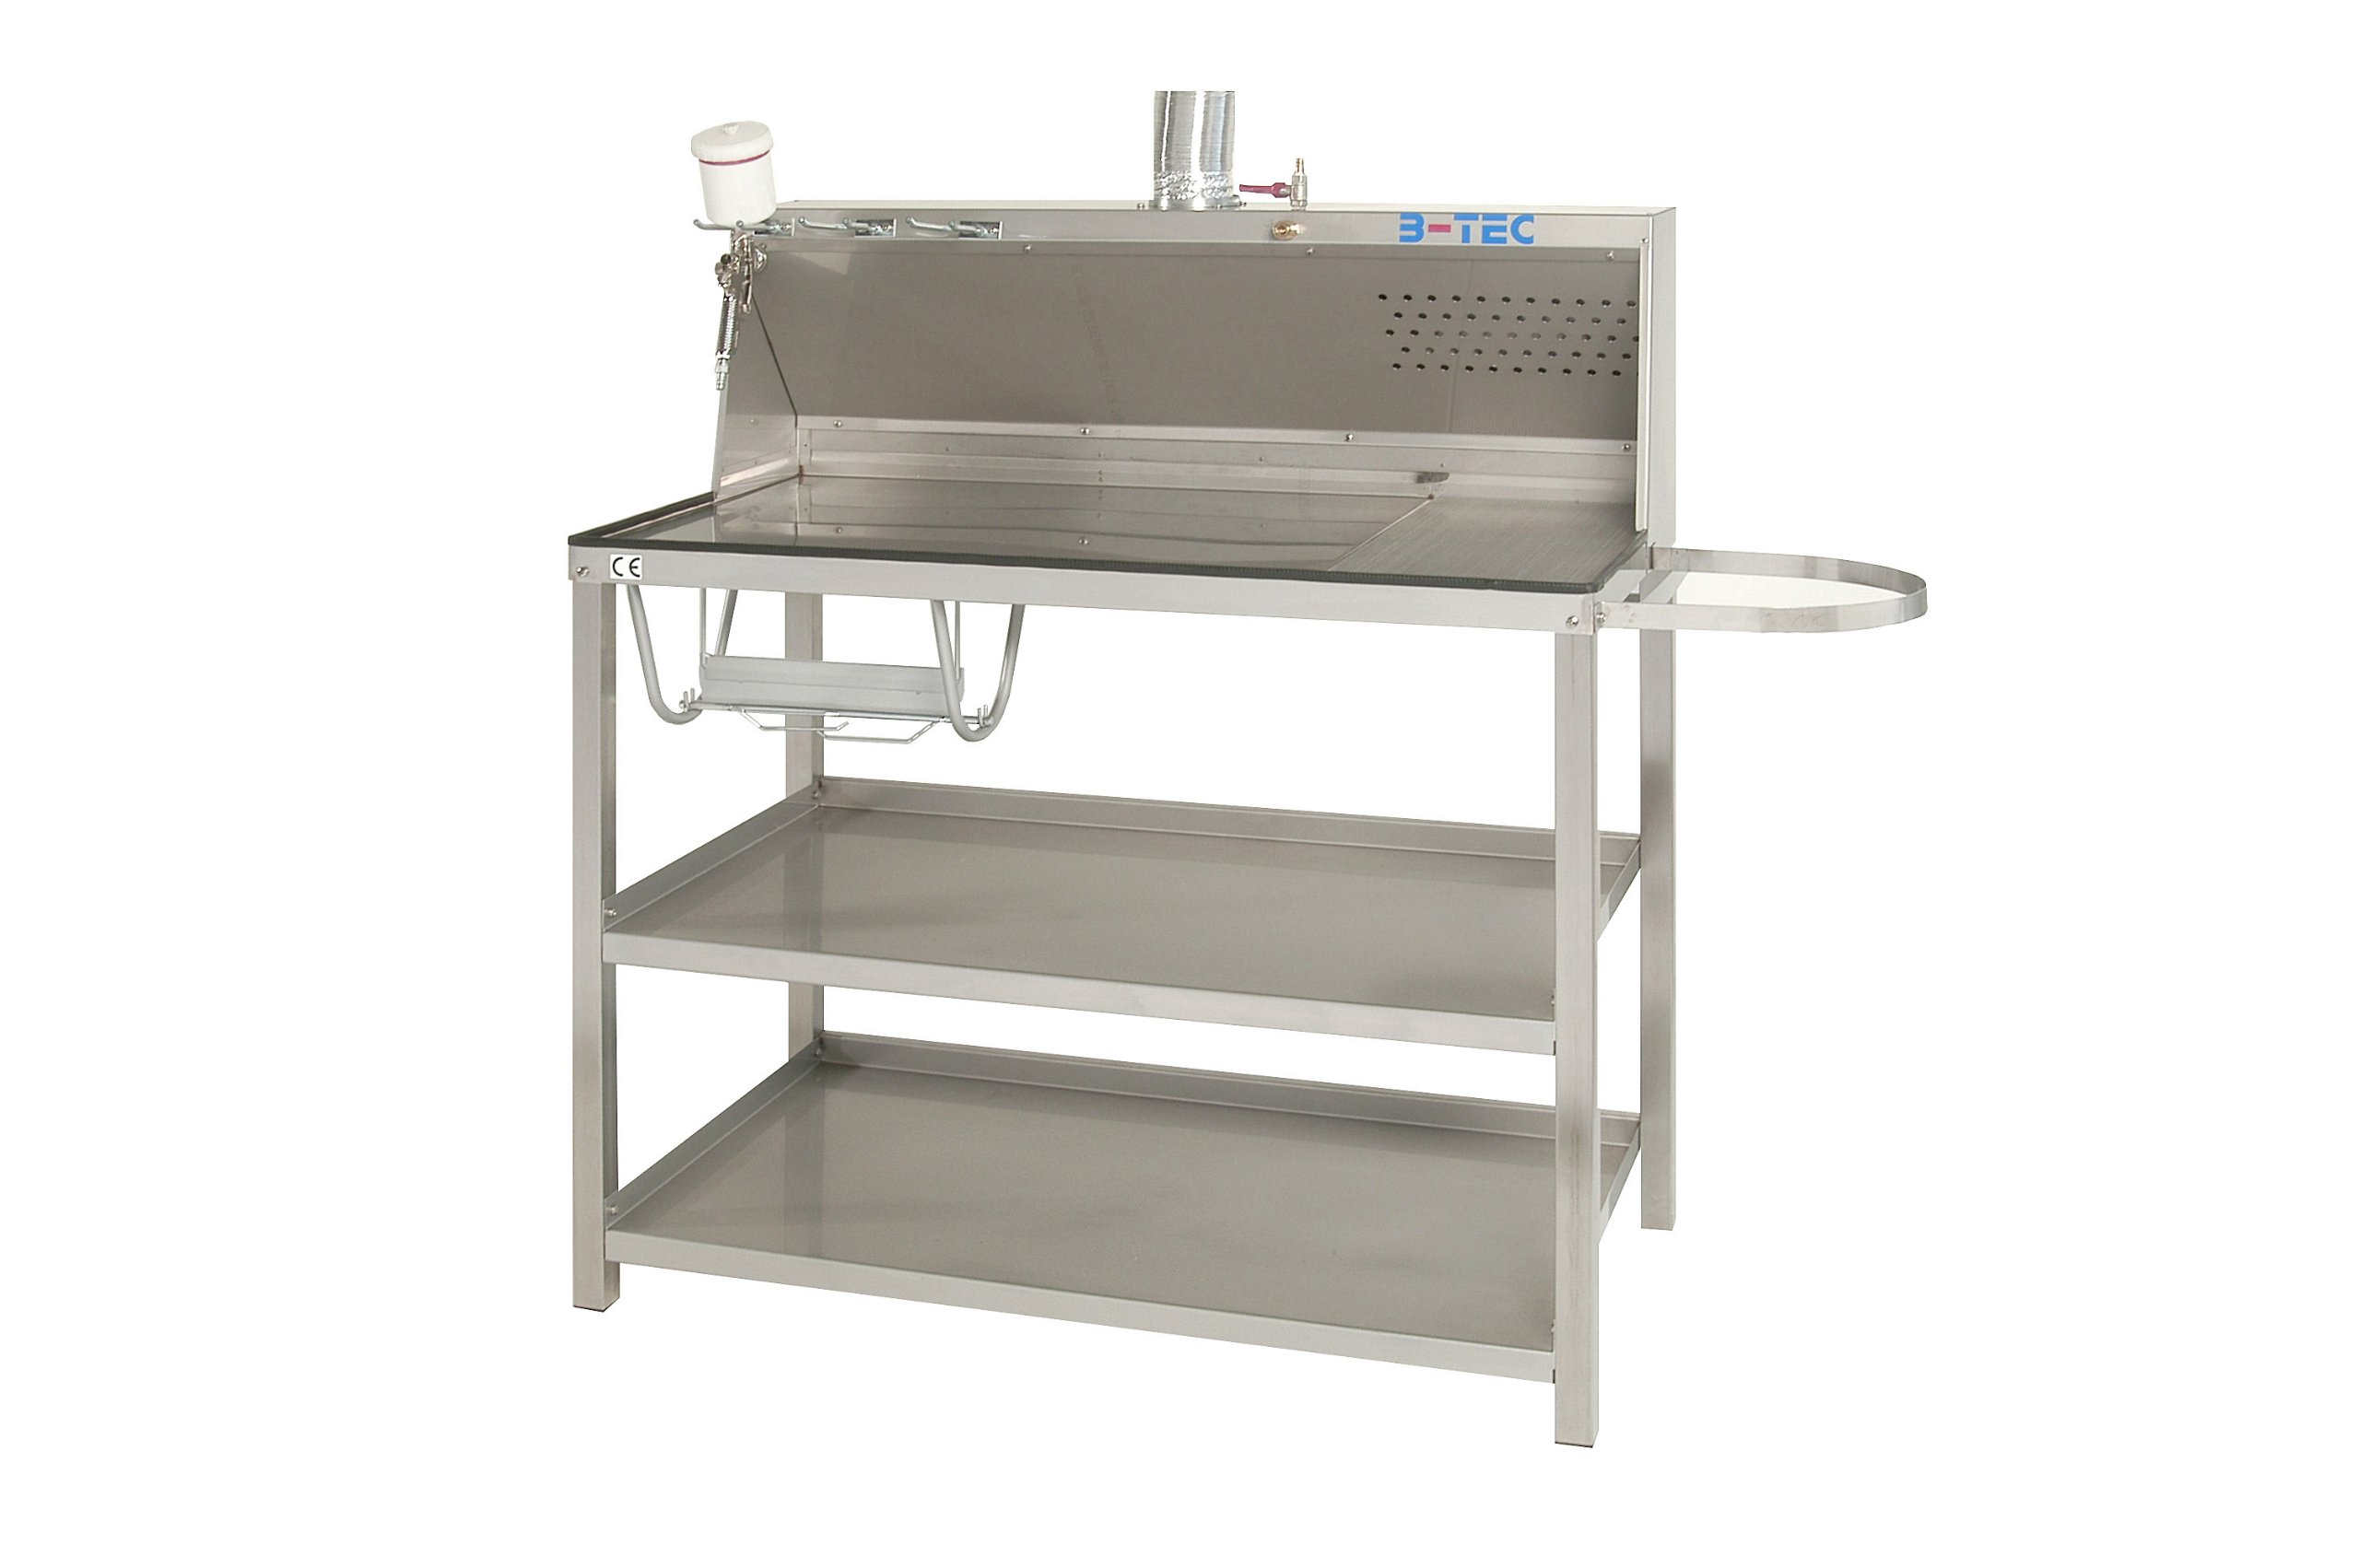 B-TEC Systems P-02 Stainless Steel Mixing and Work Table with Air Exhausting System, 56-1/2'' Length x 24'' Width x 55-1/2'' Height